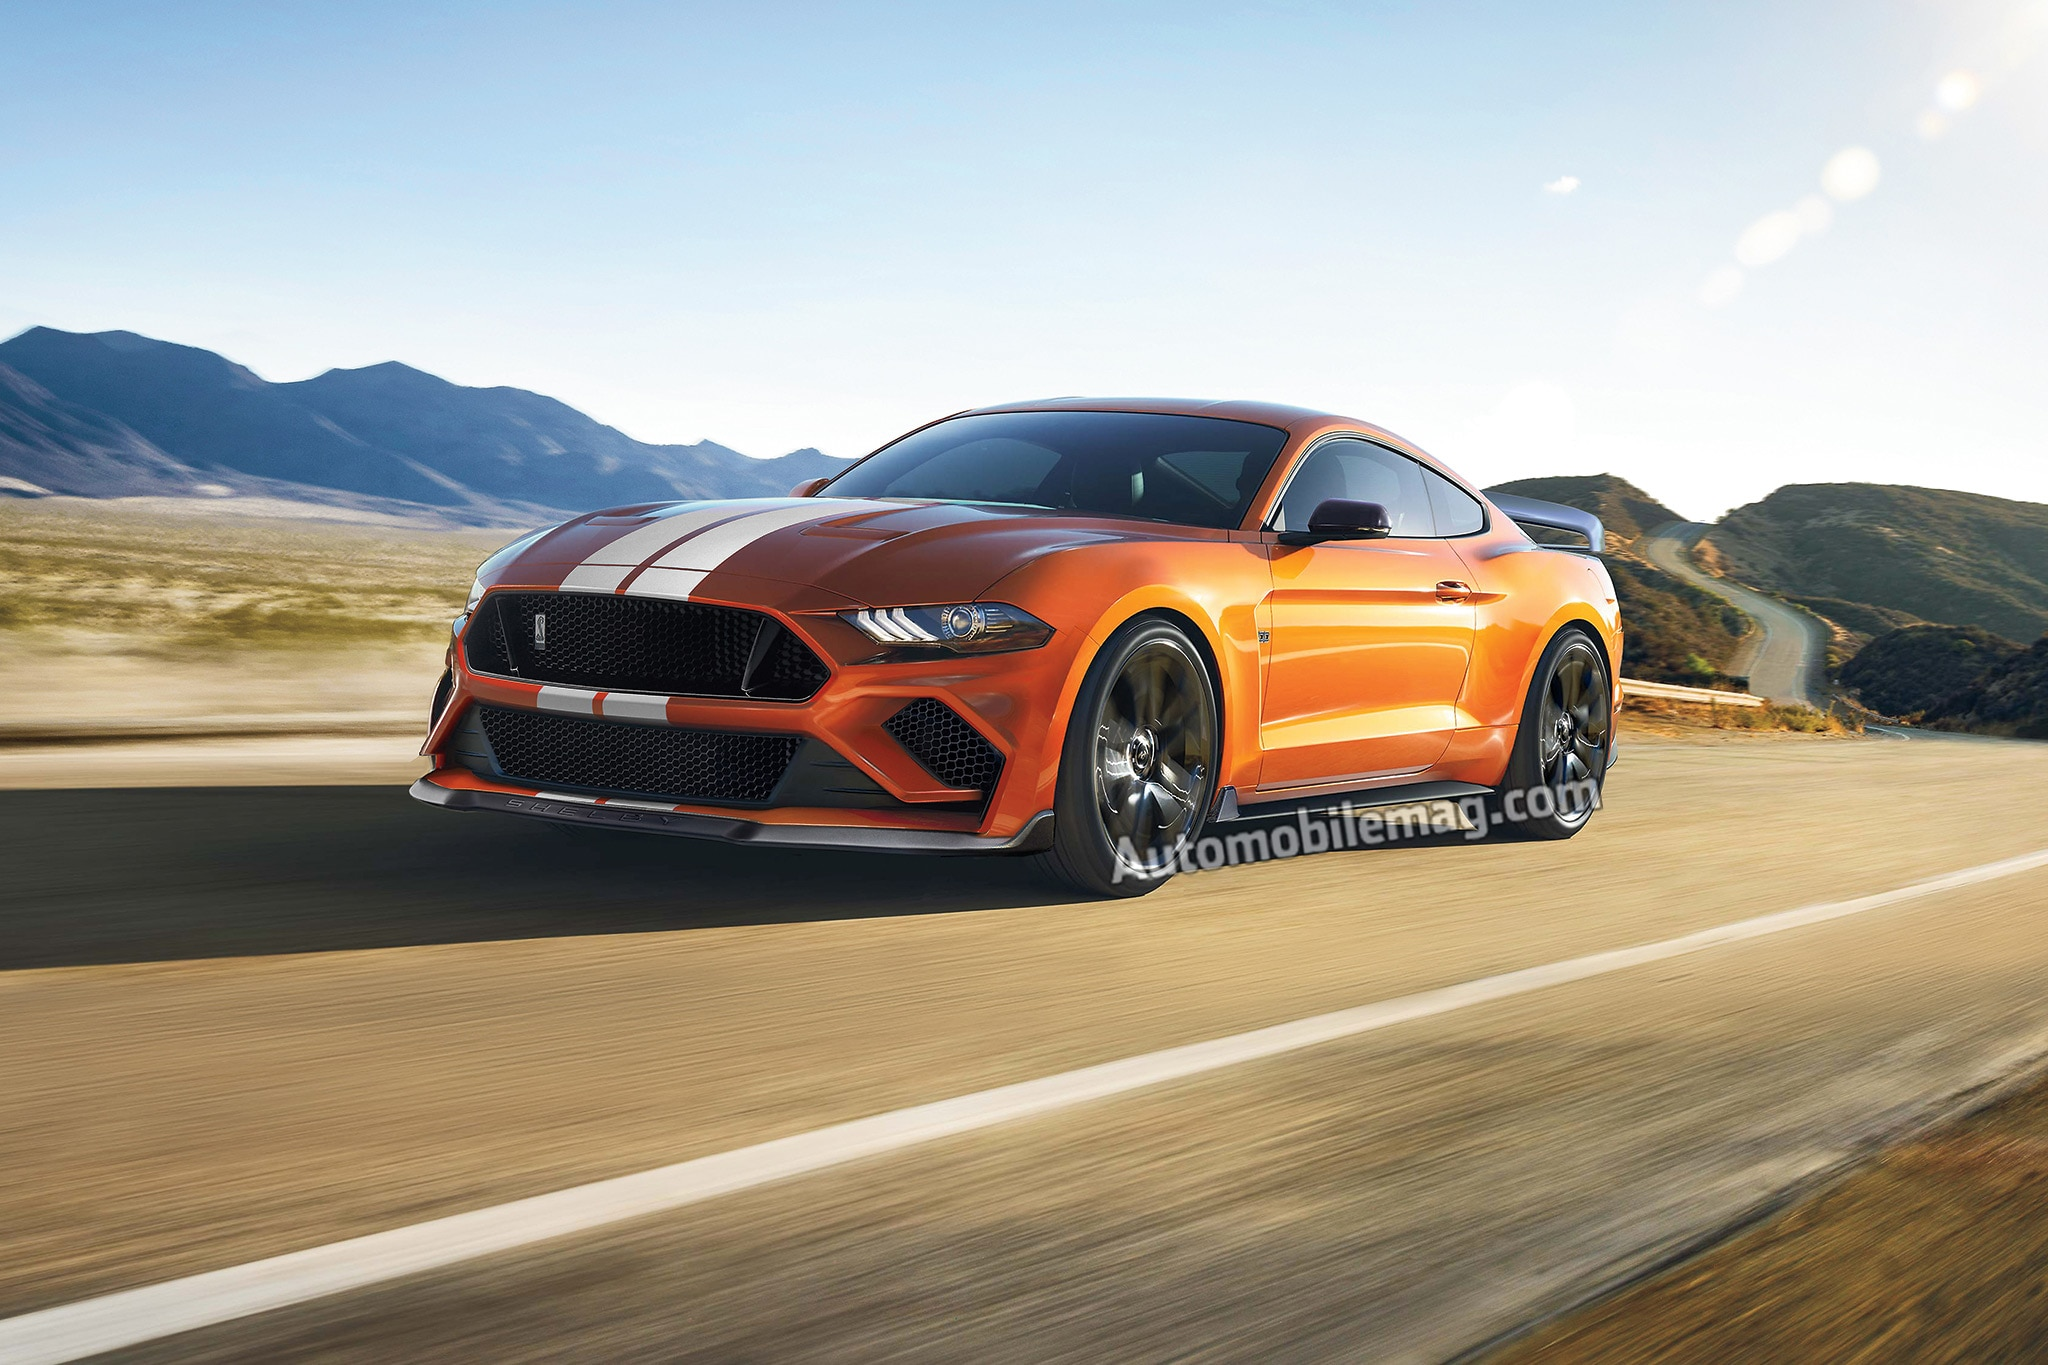 2019 ford mustang shelby gt500 confirmed with 700